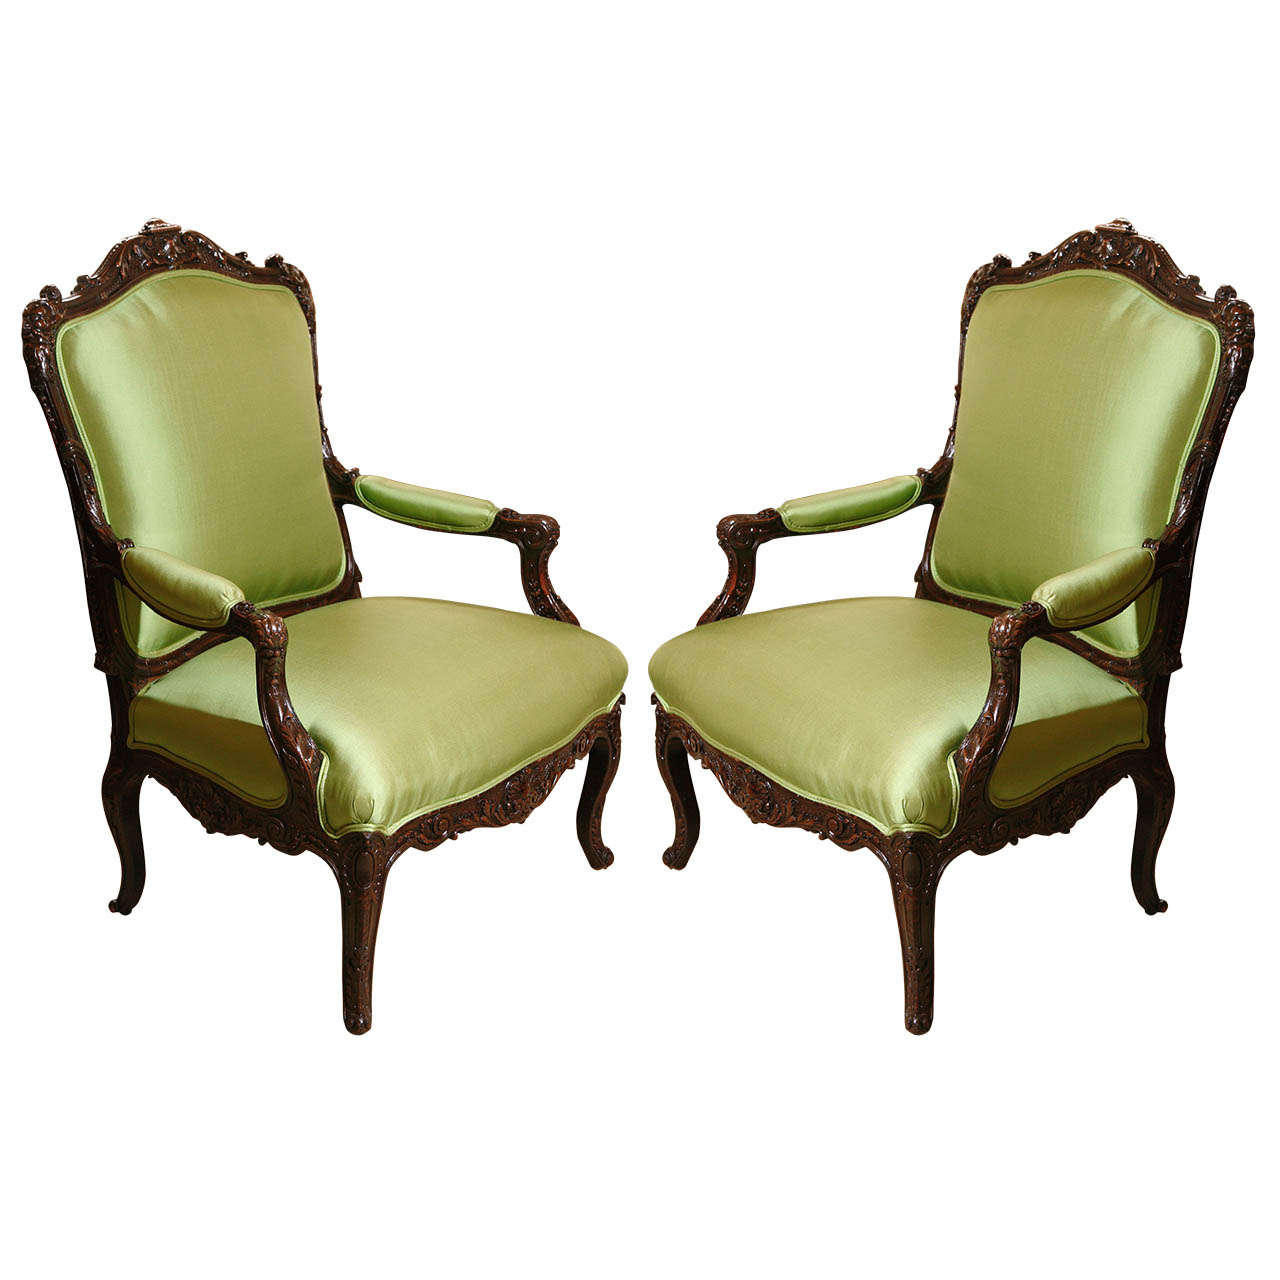 Beau 19th C., Renaissance Style, Northern Italian Chairs For Sale